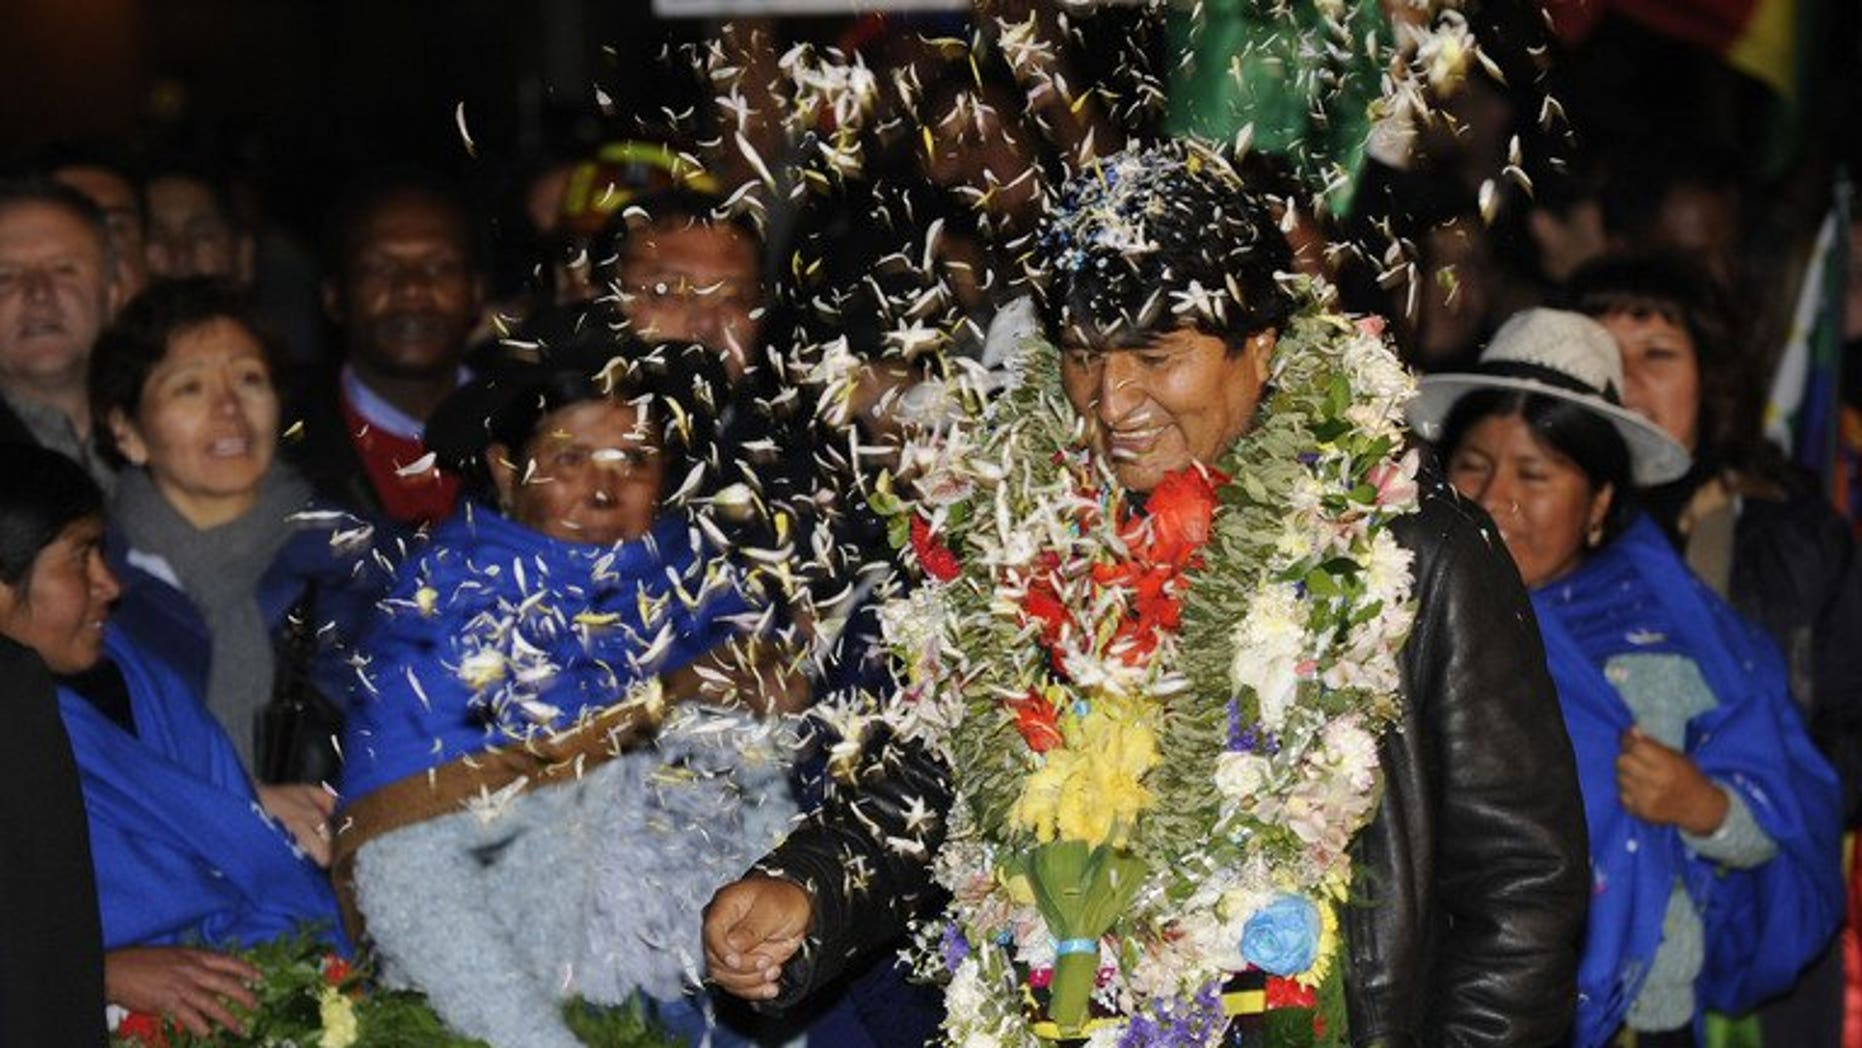 Bolivian President Evo Morales is greeted upon arrival at El Alto Airport late on July 3, 2013 in La Paz. Leftist Latin American leaders gathered in Bolivia on Thursday to back Morales, fuming after some European nations temporarily refused his plane access to their airspace amid suspicions US fugitive Edward Snowden was aboard.